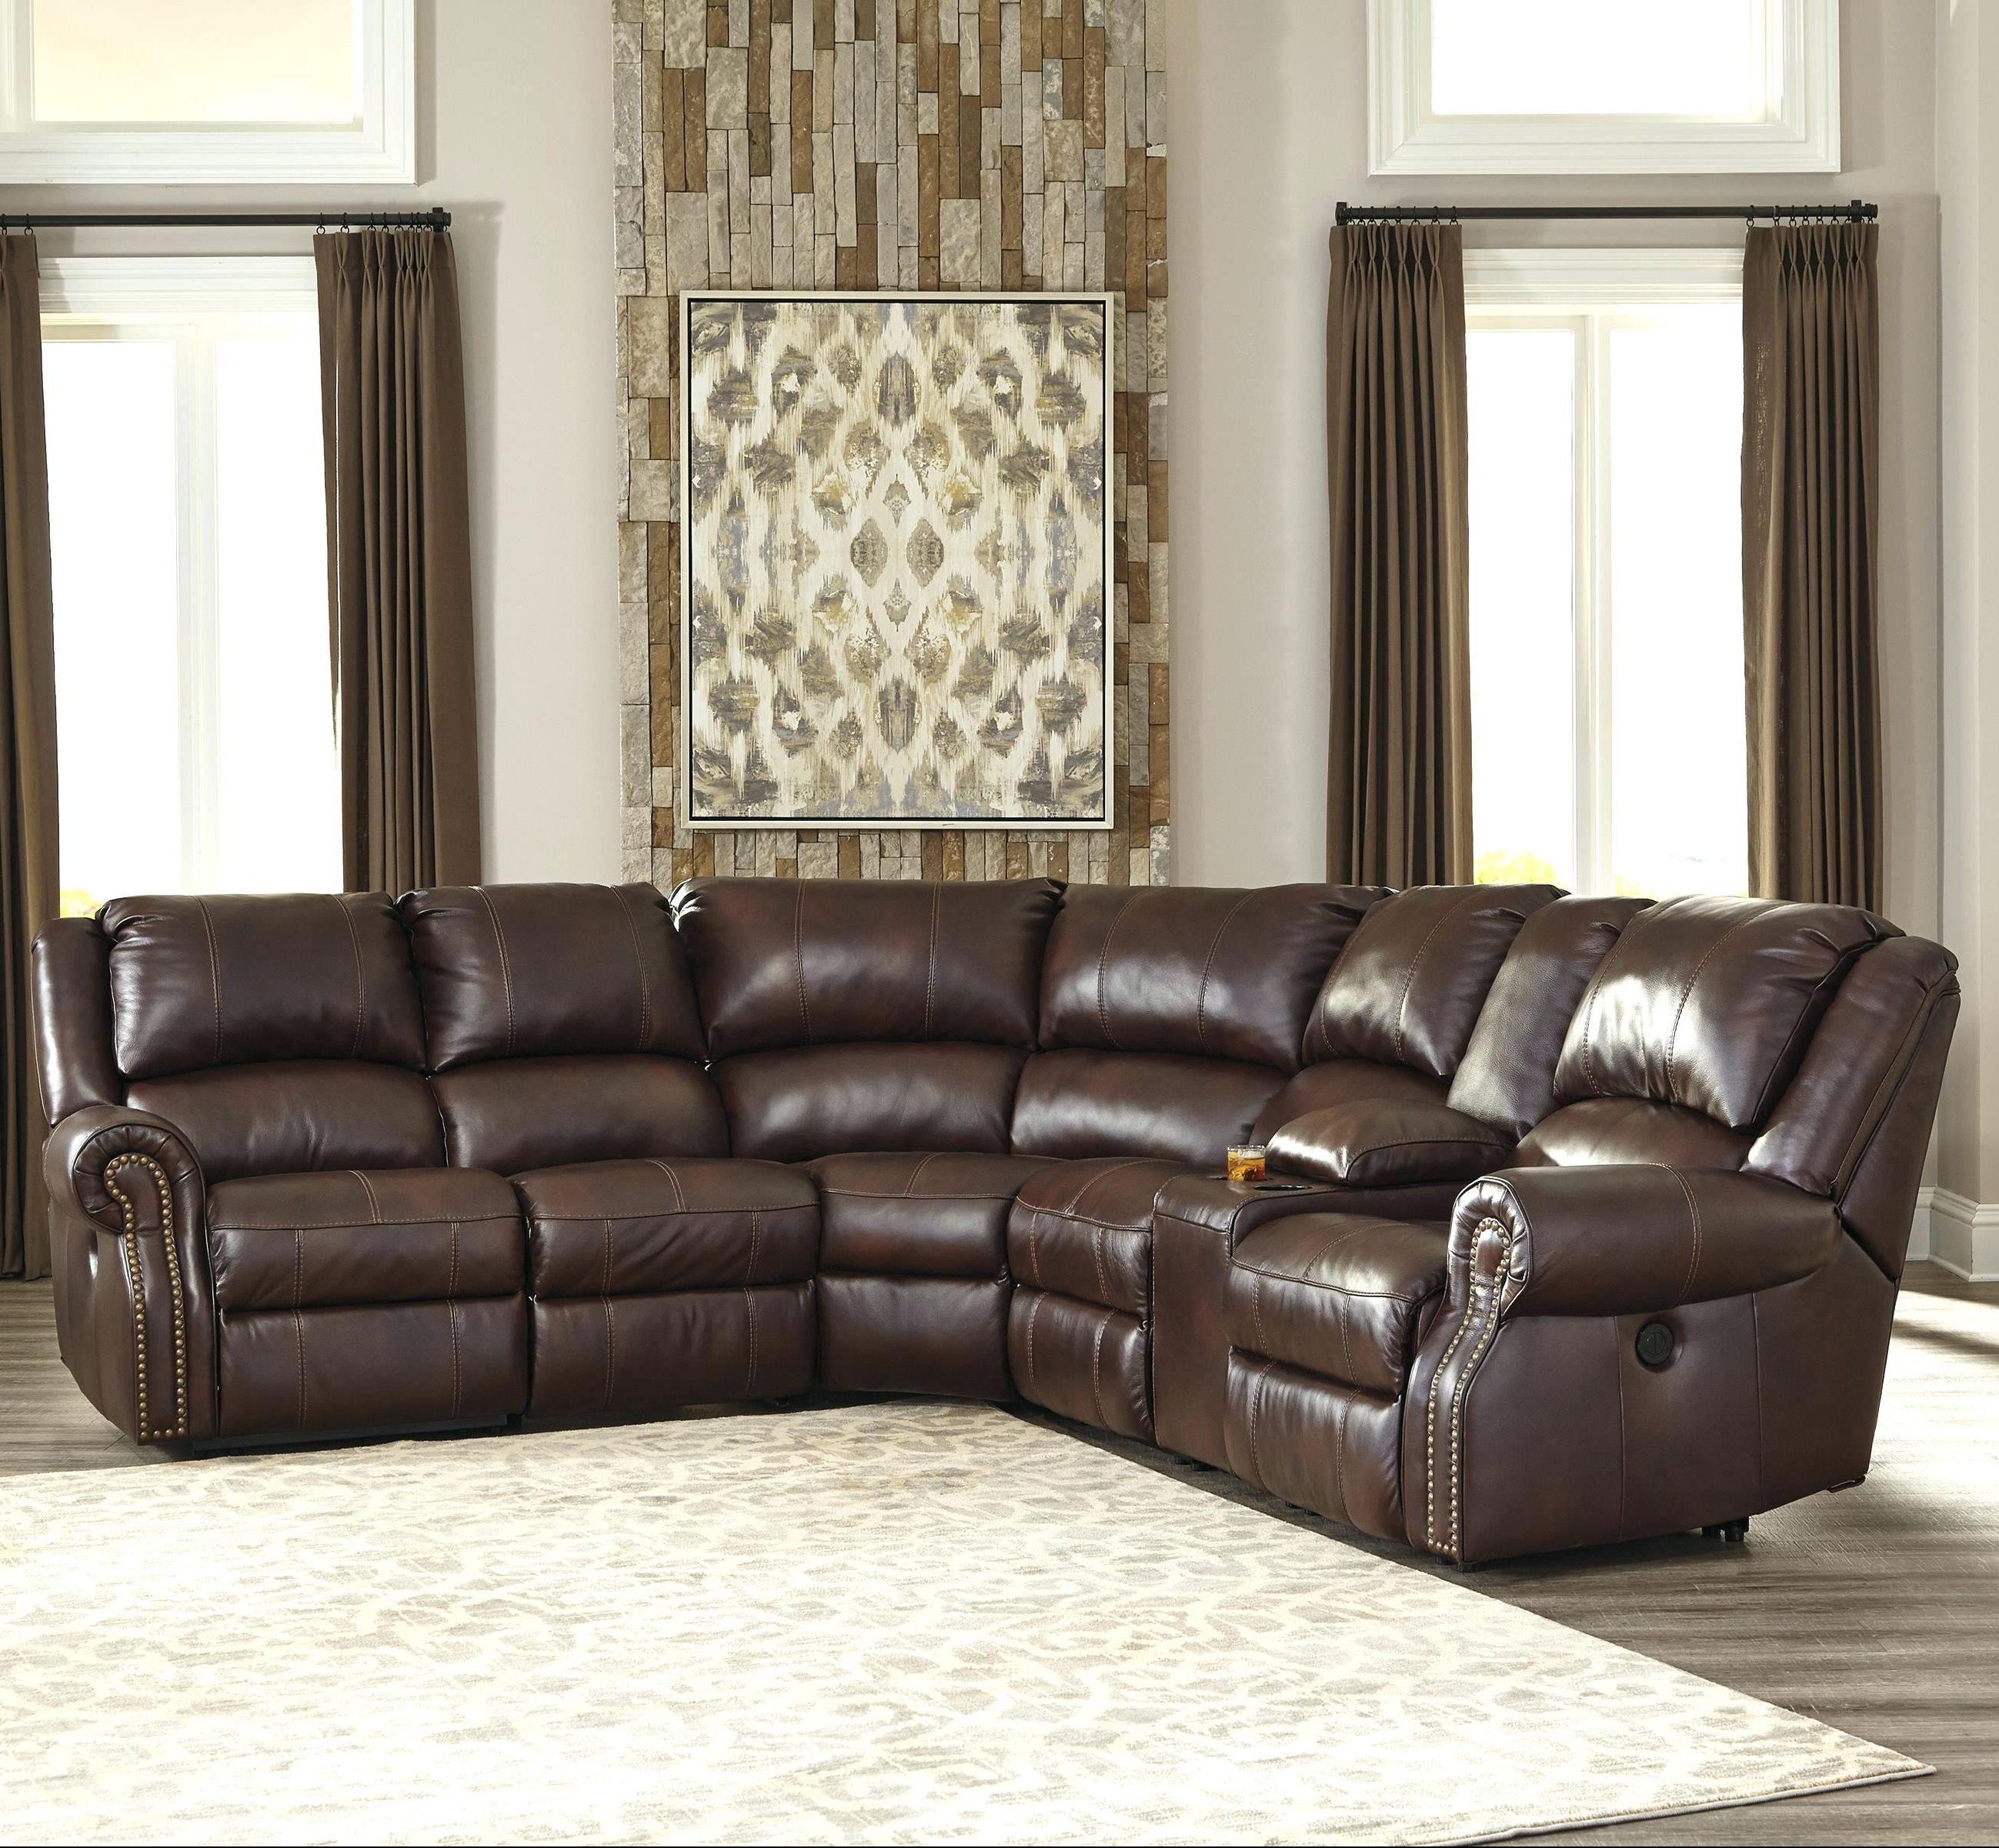 Well Known 6 Piece Leather Sectional Sofas With Regard To Stacey Leather Sectional Sofa (View 12 of 15)